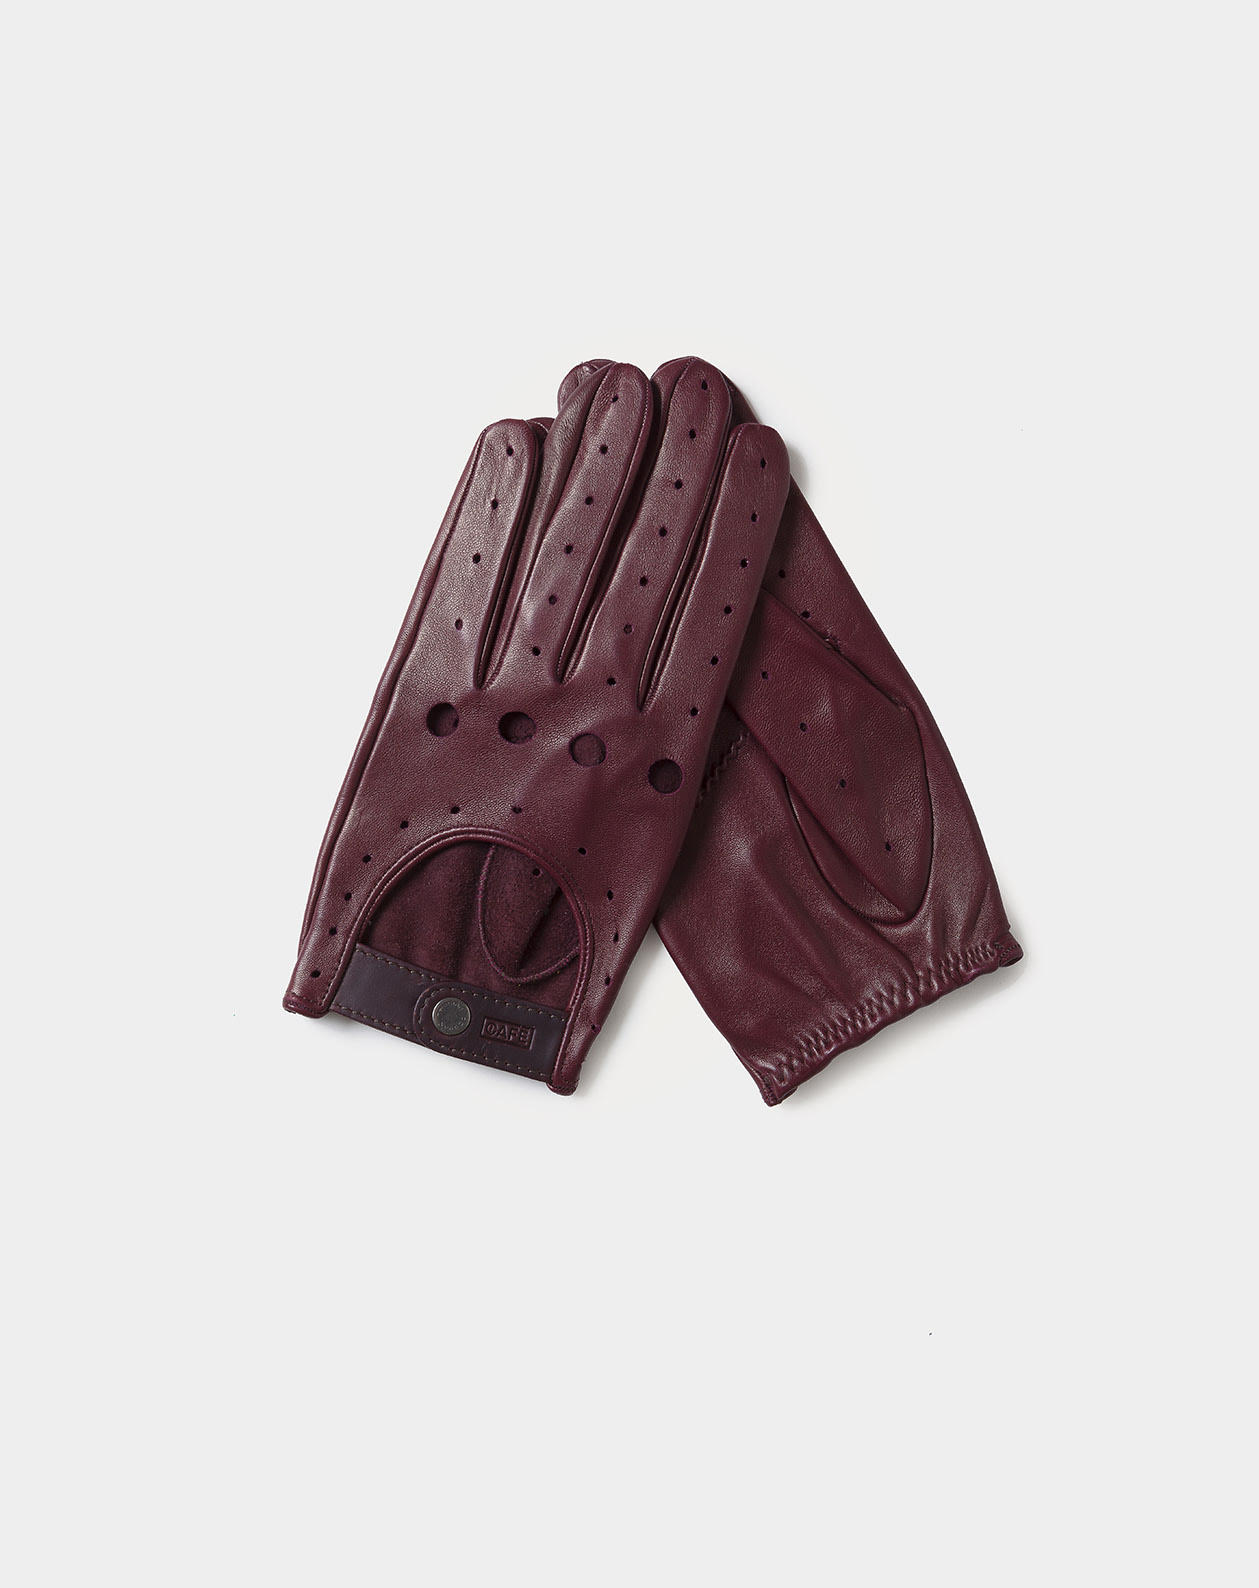 driving gloves red handcrafted in Spain